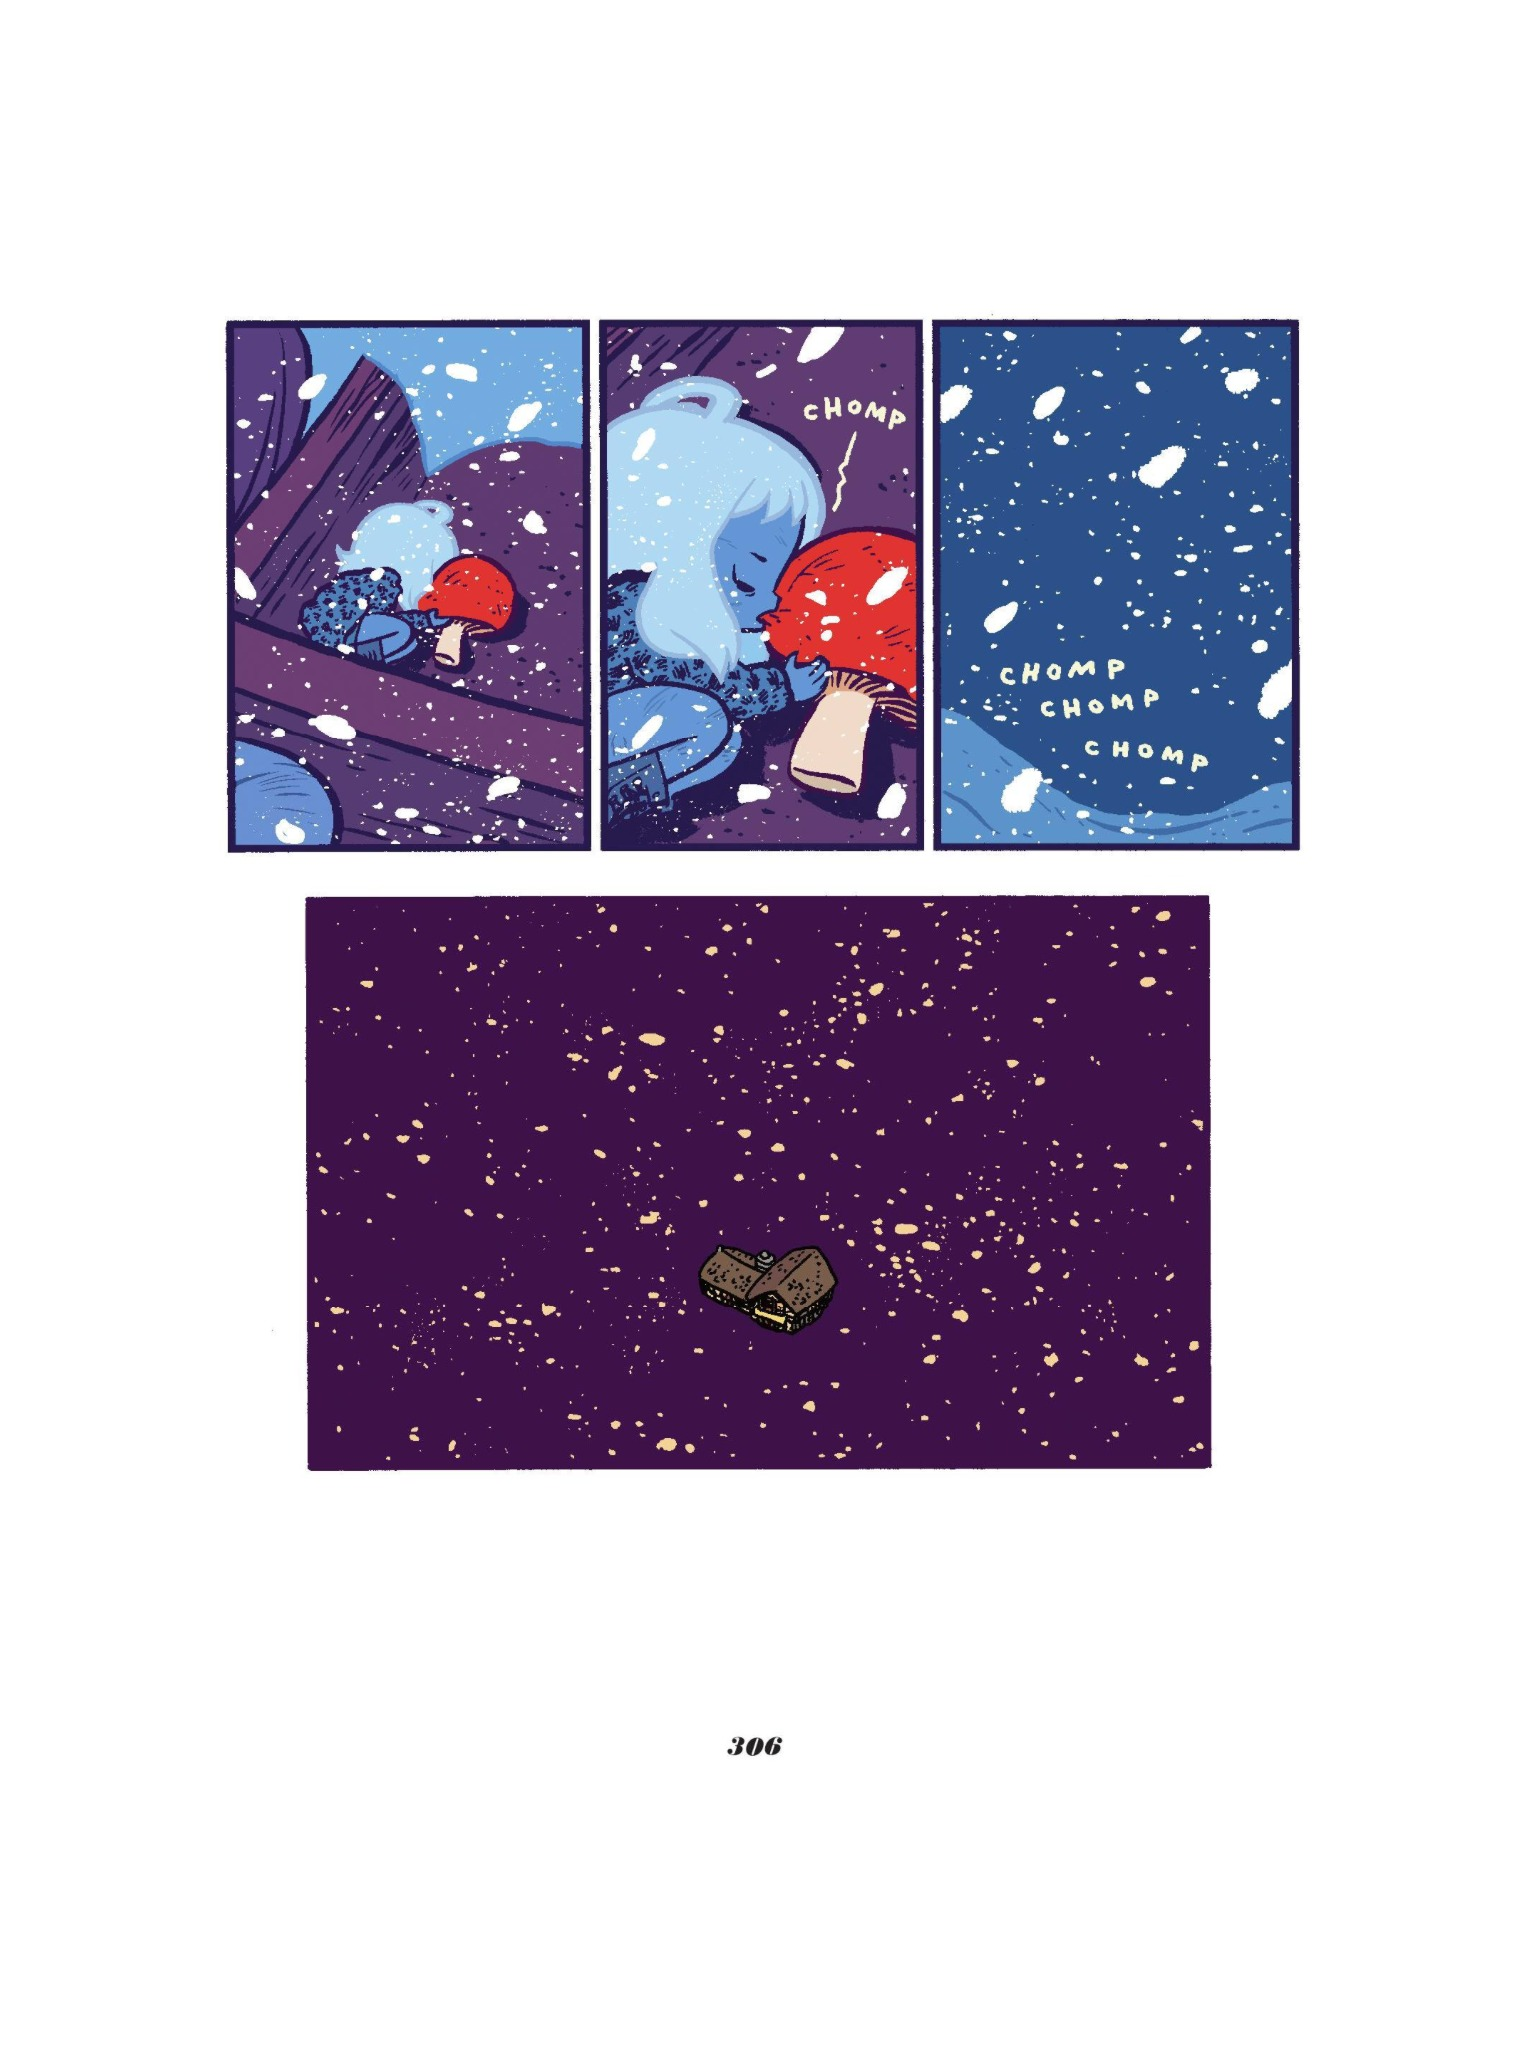 Read online Seconds comic -  Issue # Full - 306